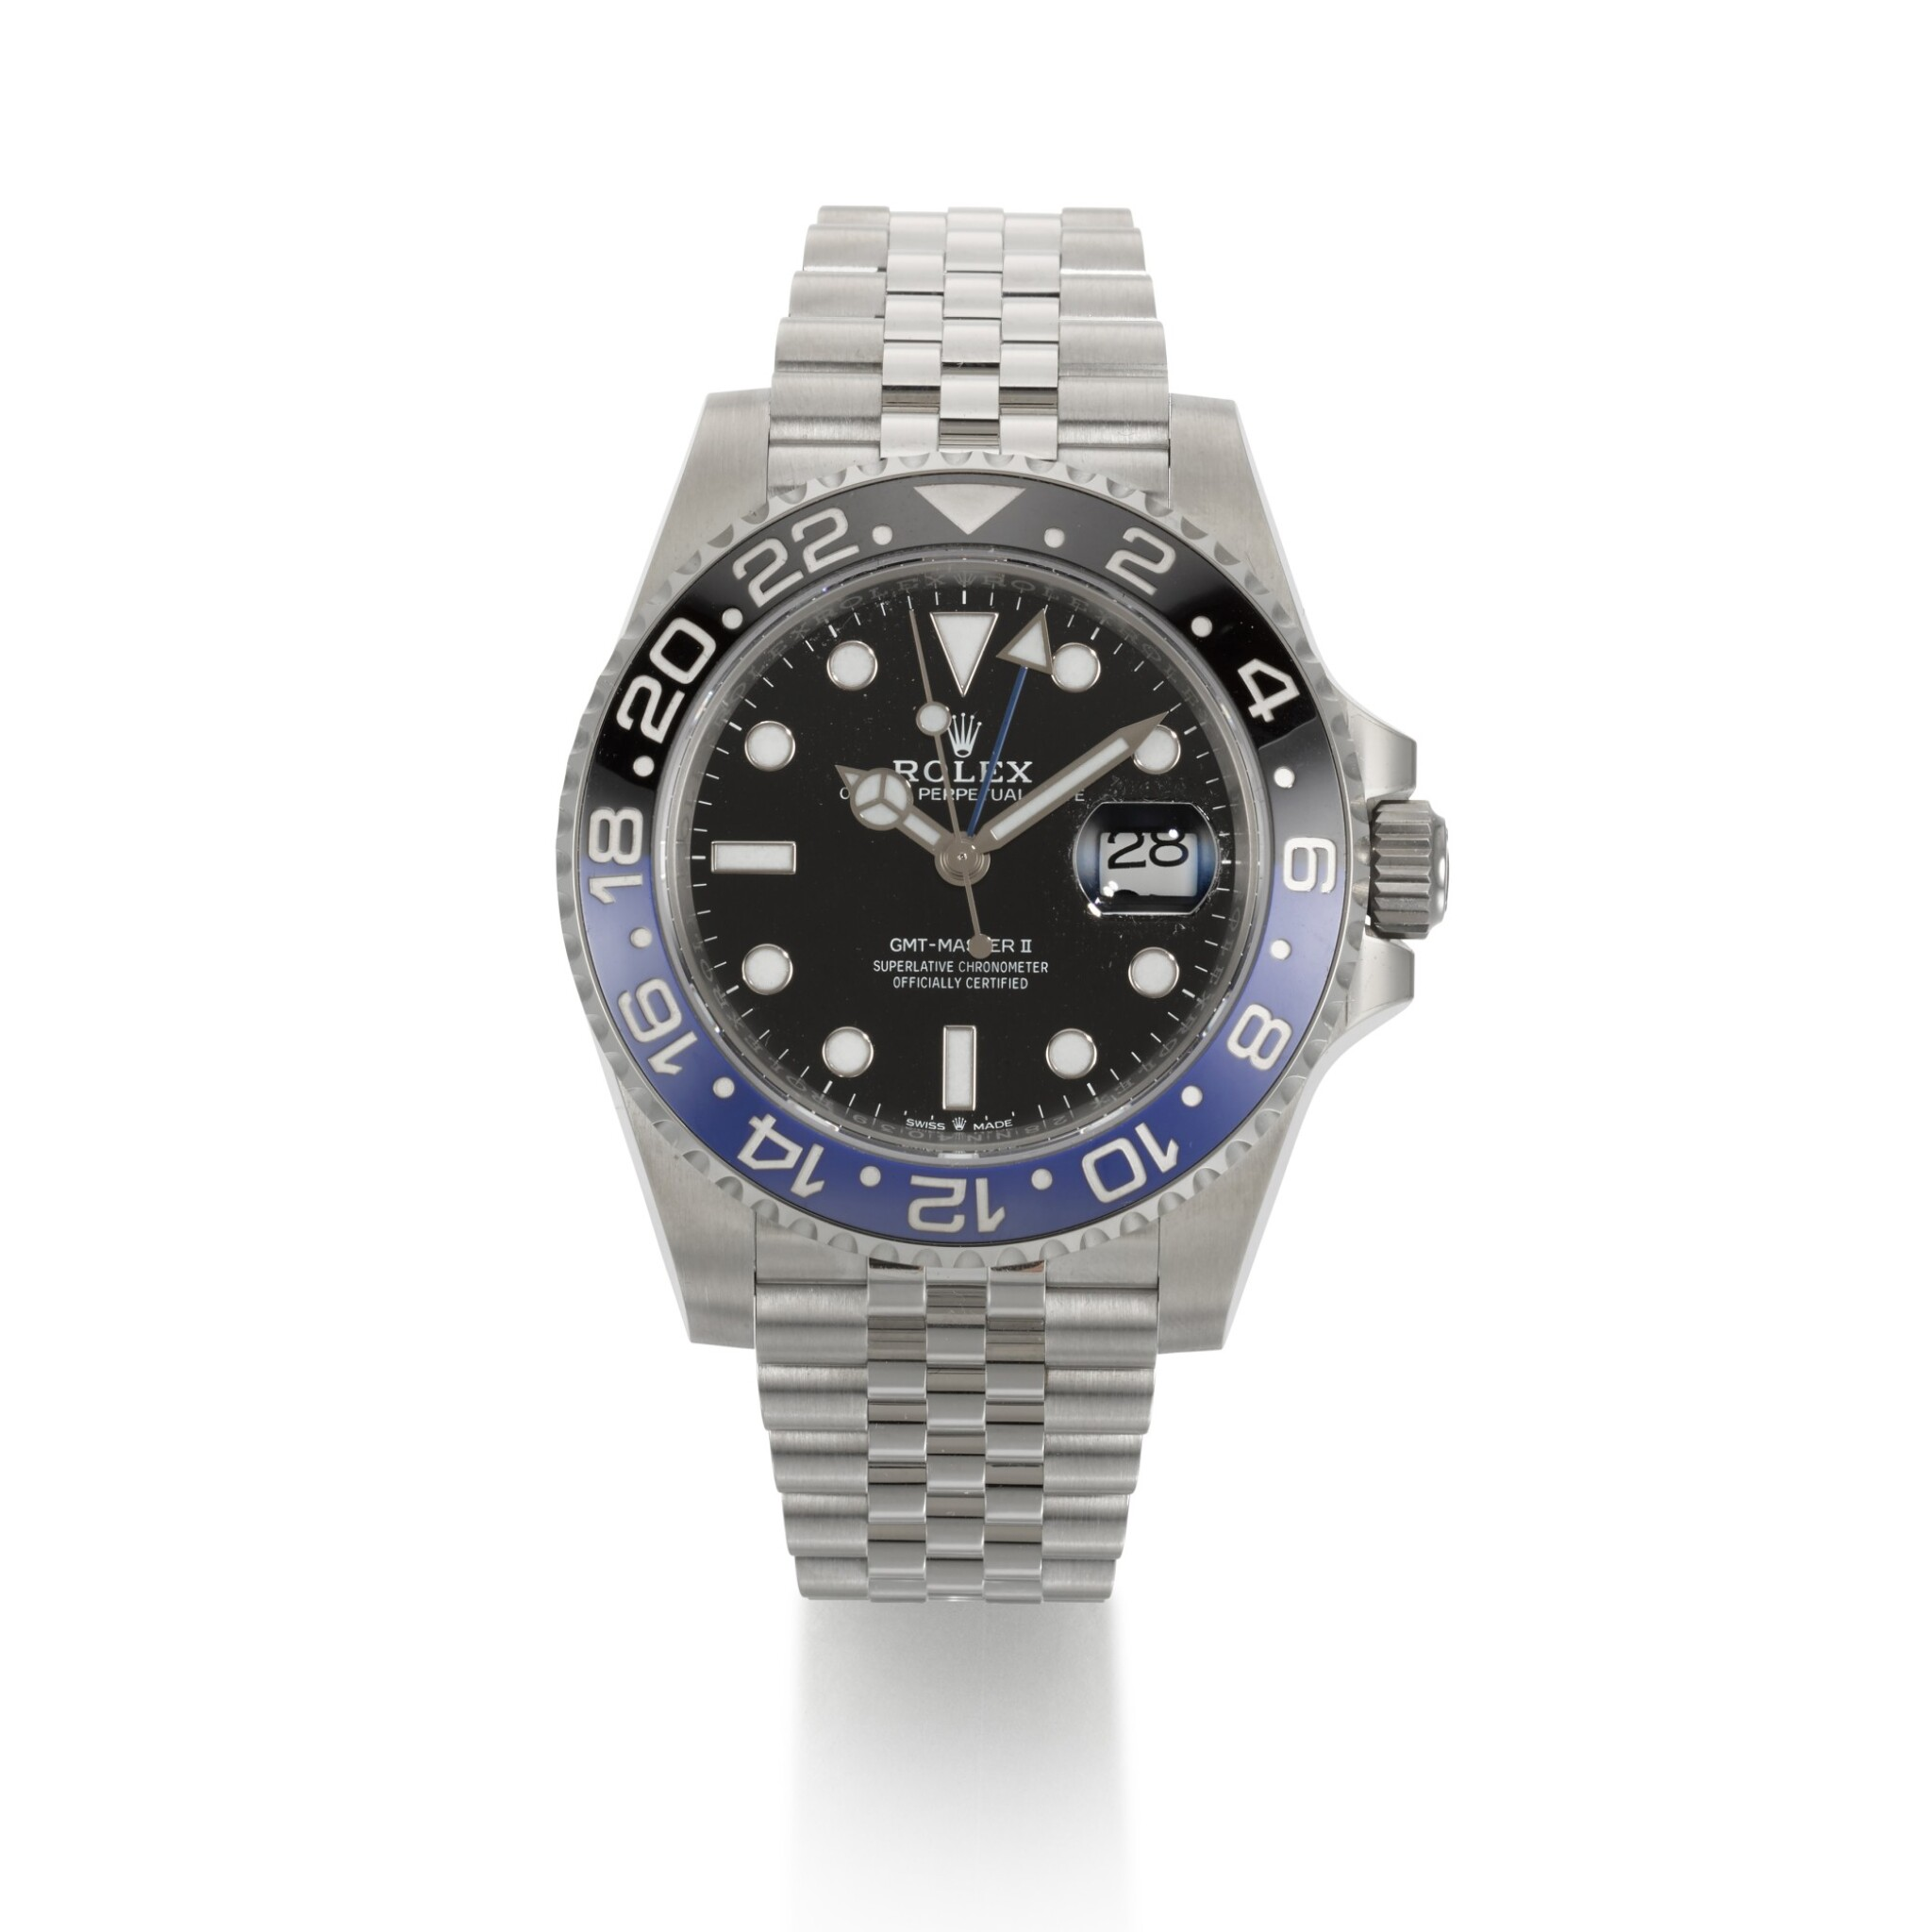 """View full screen - View 1 of Lot 357. ROLEX   GMT-MASTER """"BATGIRL"""", REF 126710BLNR, STAINLESS STEEL DUAL-TIME WRISTWATCH WITH DATE AND BRACELET, CIRCA 2019."""